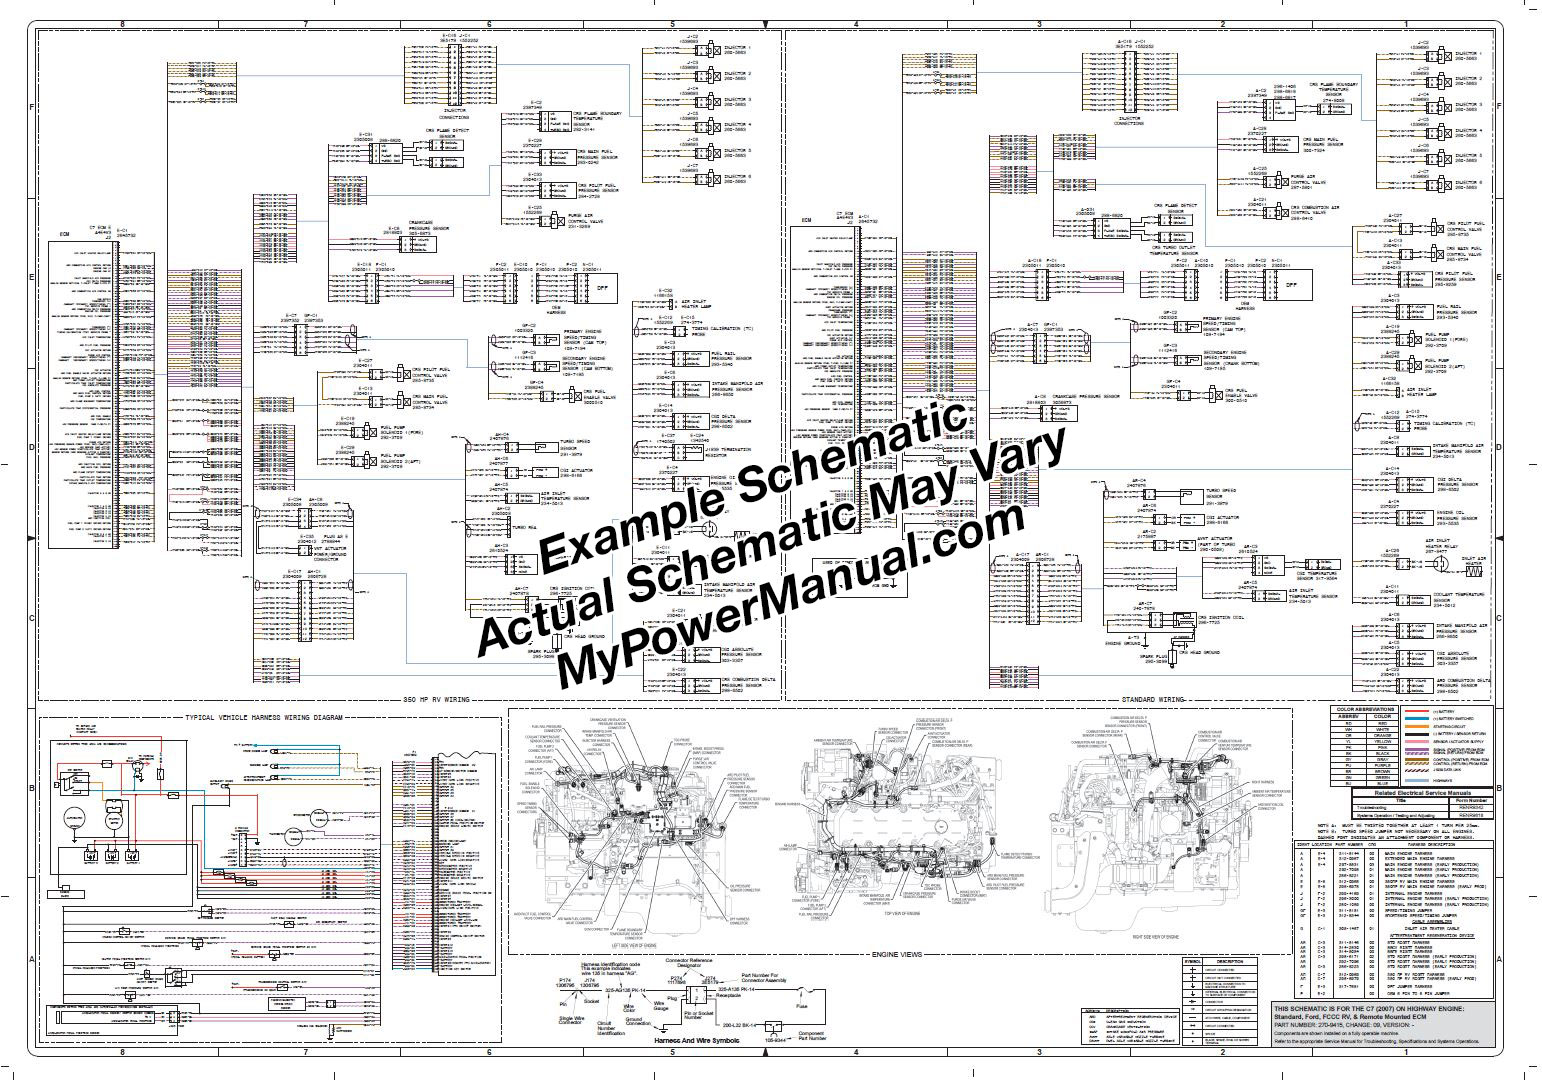 Cool workhorse chassis wiring diagram gallery the best electrical motorhome wiring diagram winter clip arts awesome collection of 1999 2003 workhorse rv truck service repair manual mypowermanual cheapraybanclubmaster Choice Image